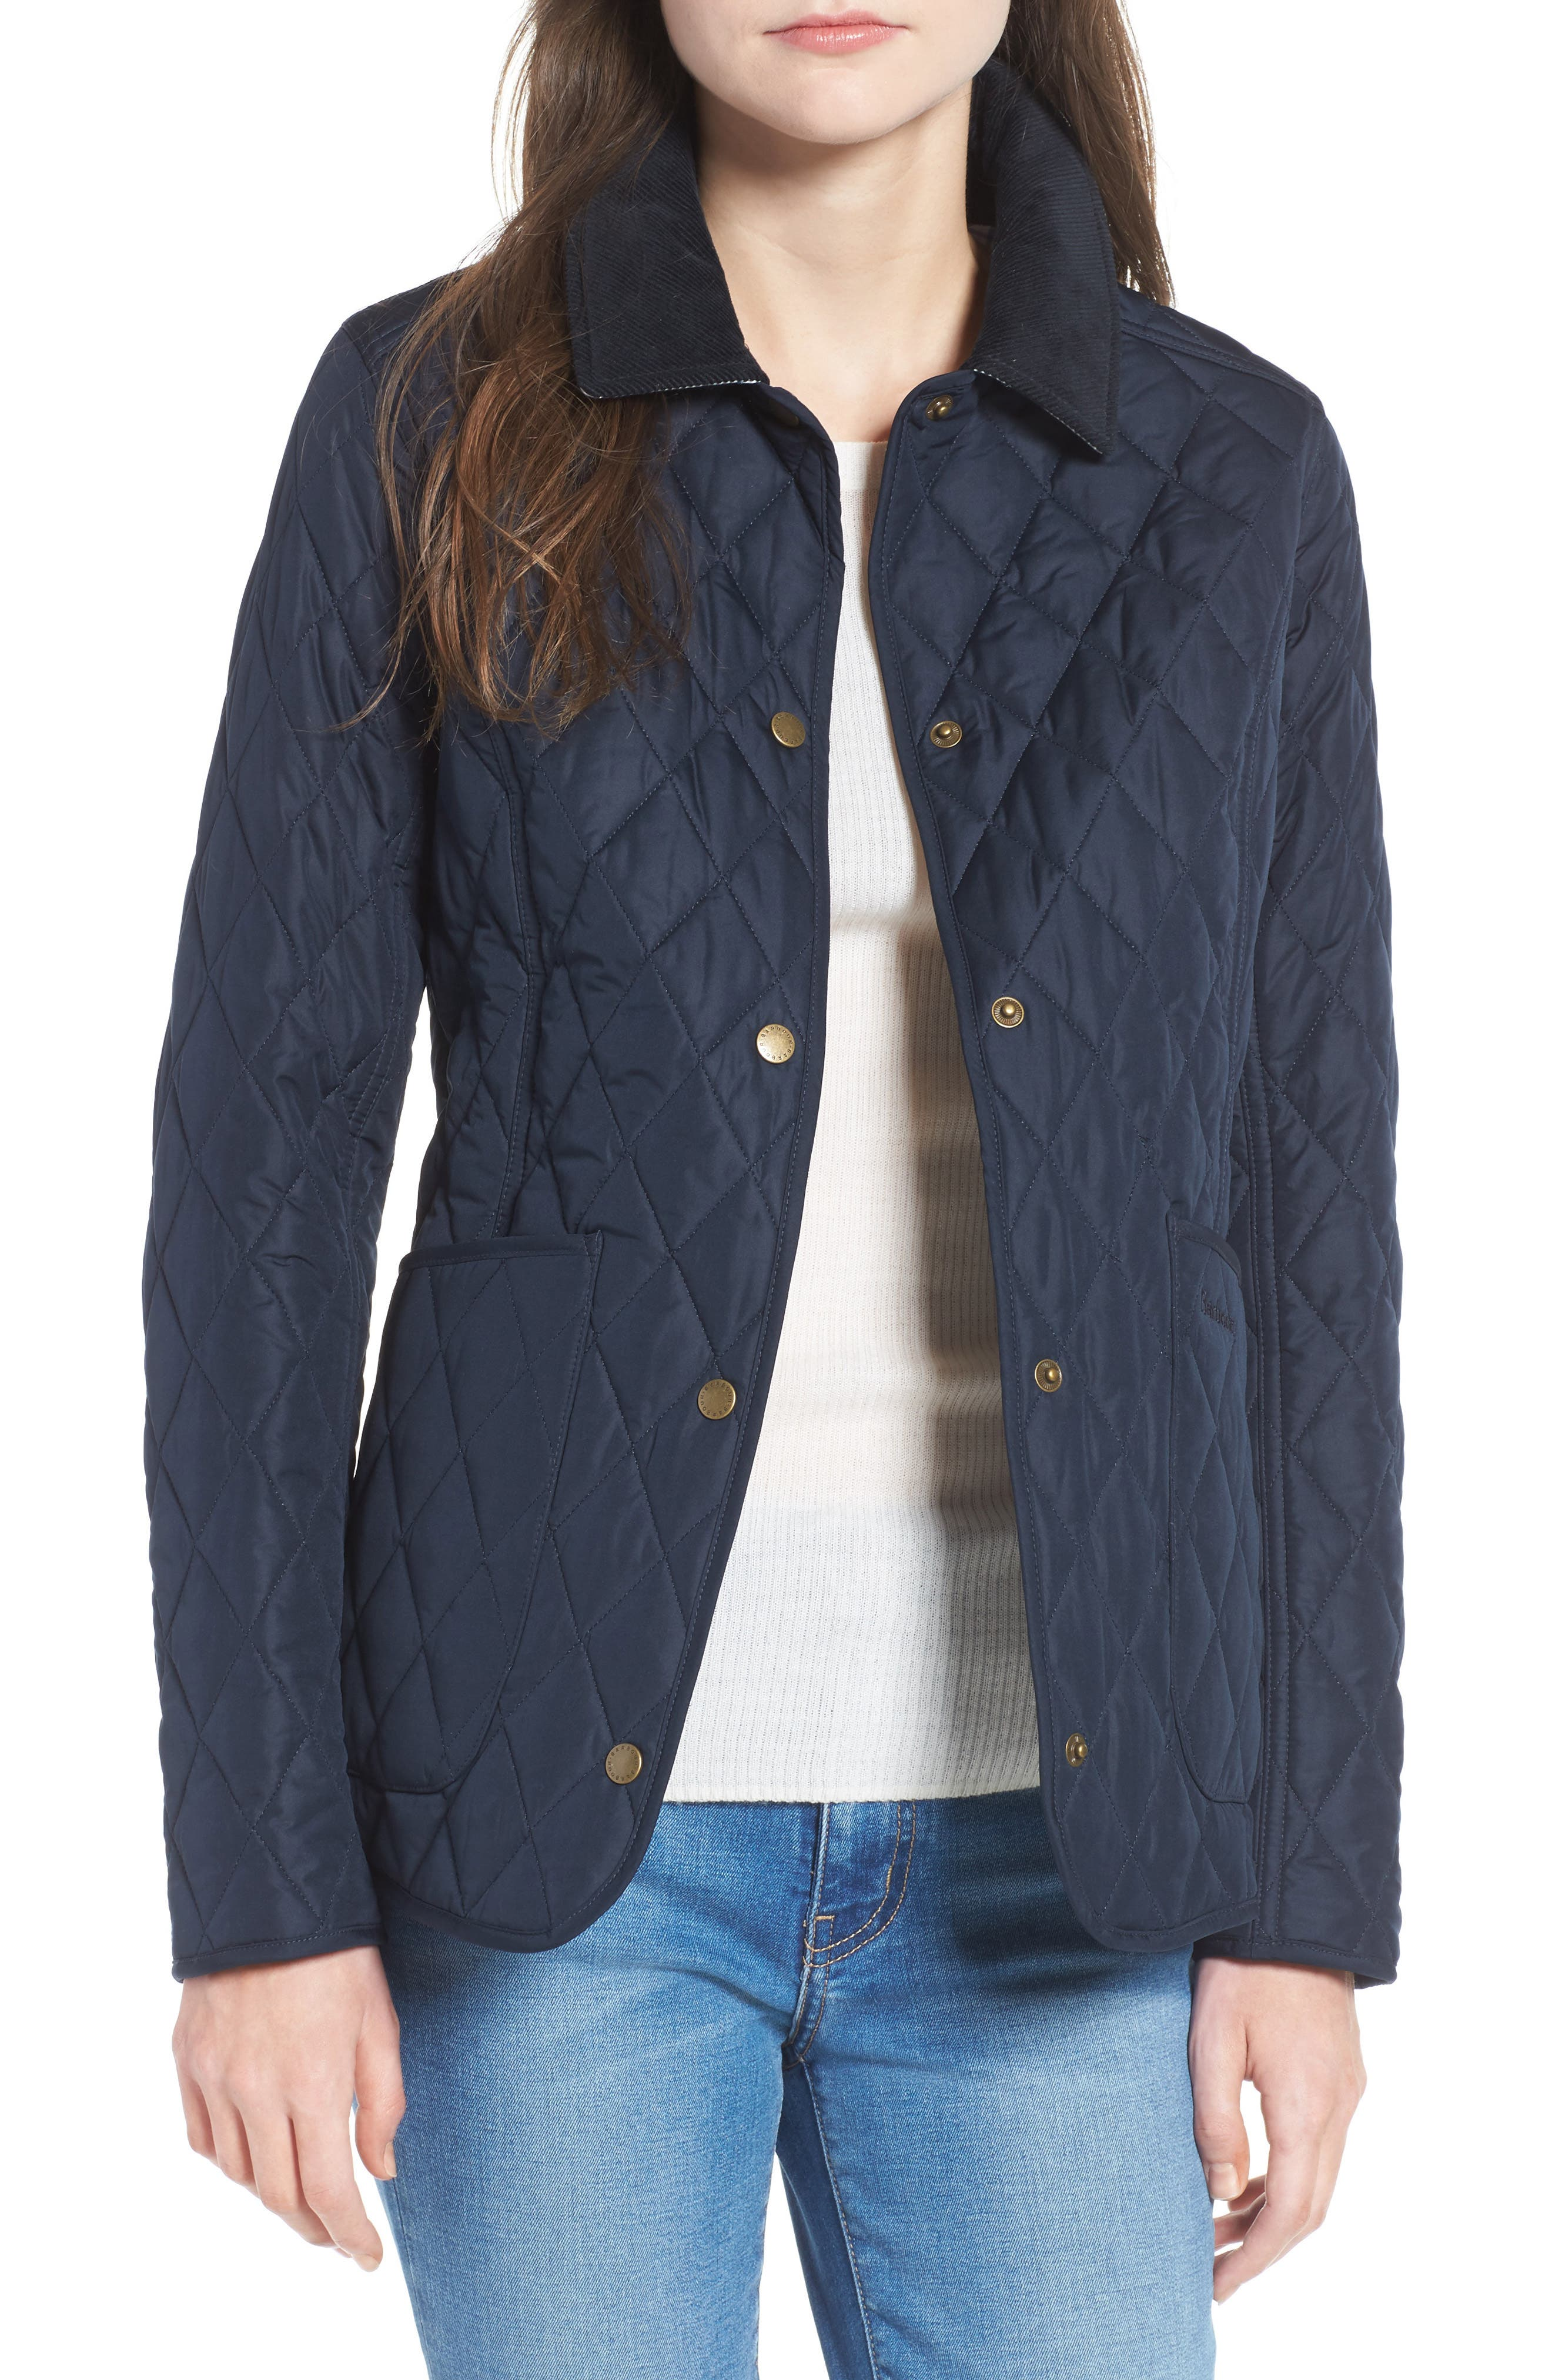 Spring Annandale Quilted Jacket,                             Main thumbnail 1, color,                             Navy/ Summer Tartan